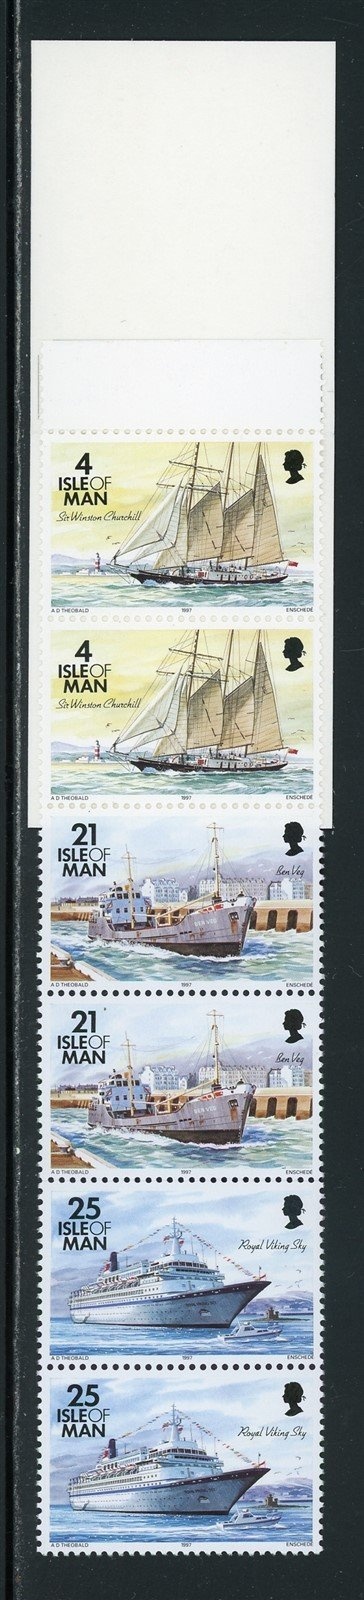 Isle of Man Scott #548a MNH BOOKLET COMPLETE IOM Ships CV$4+